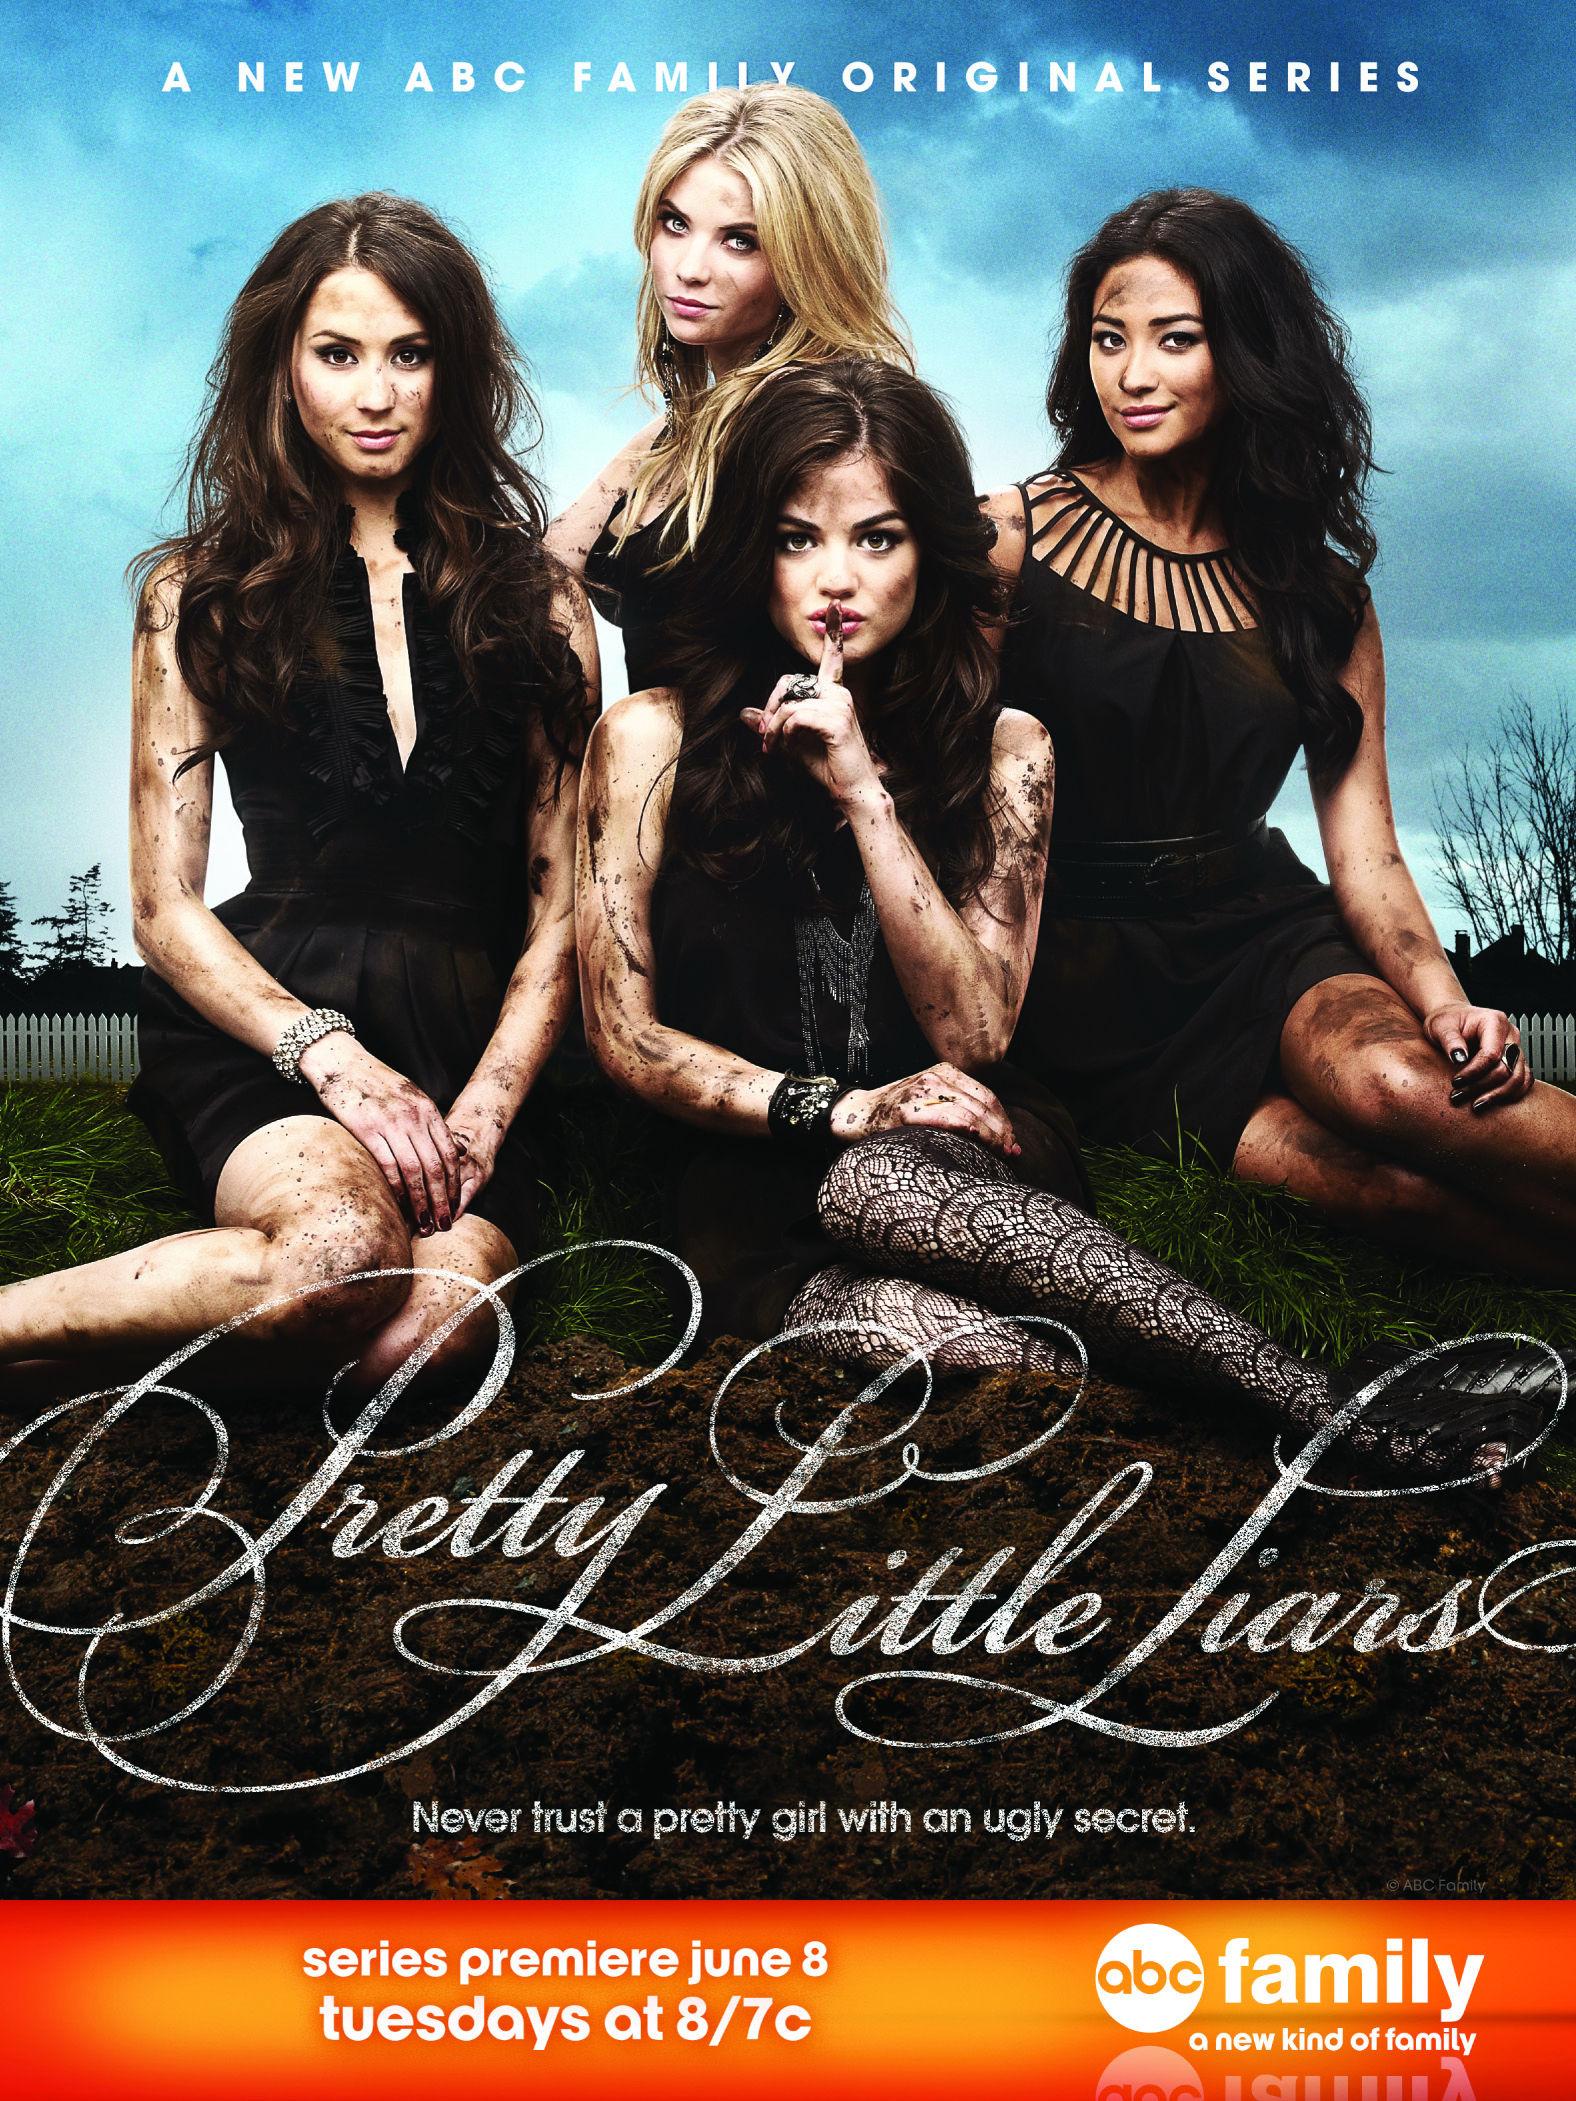 Pretty Little Liars Wallpaper ABC Family New Show